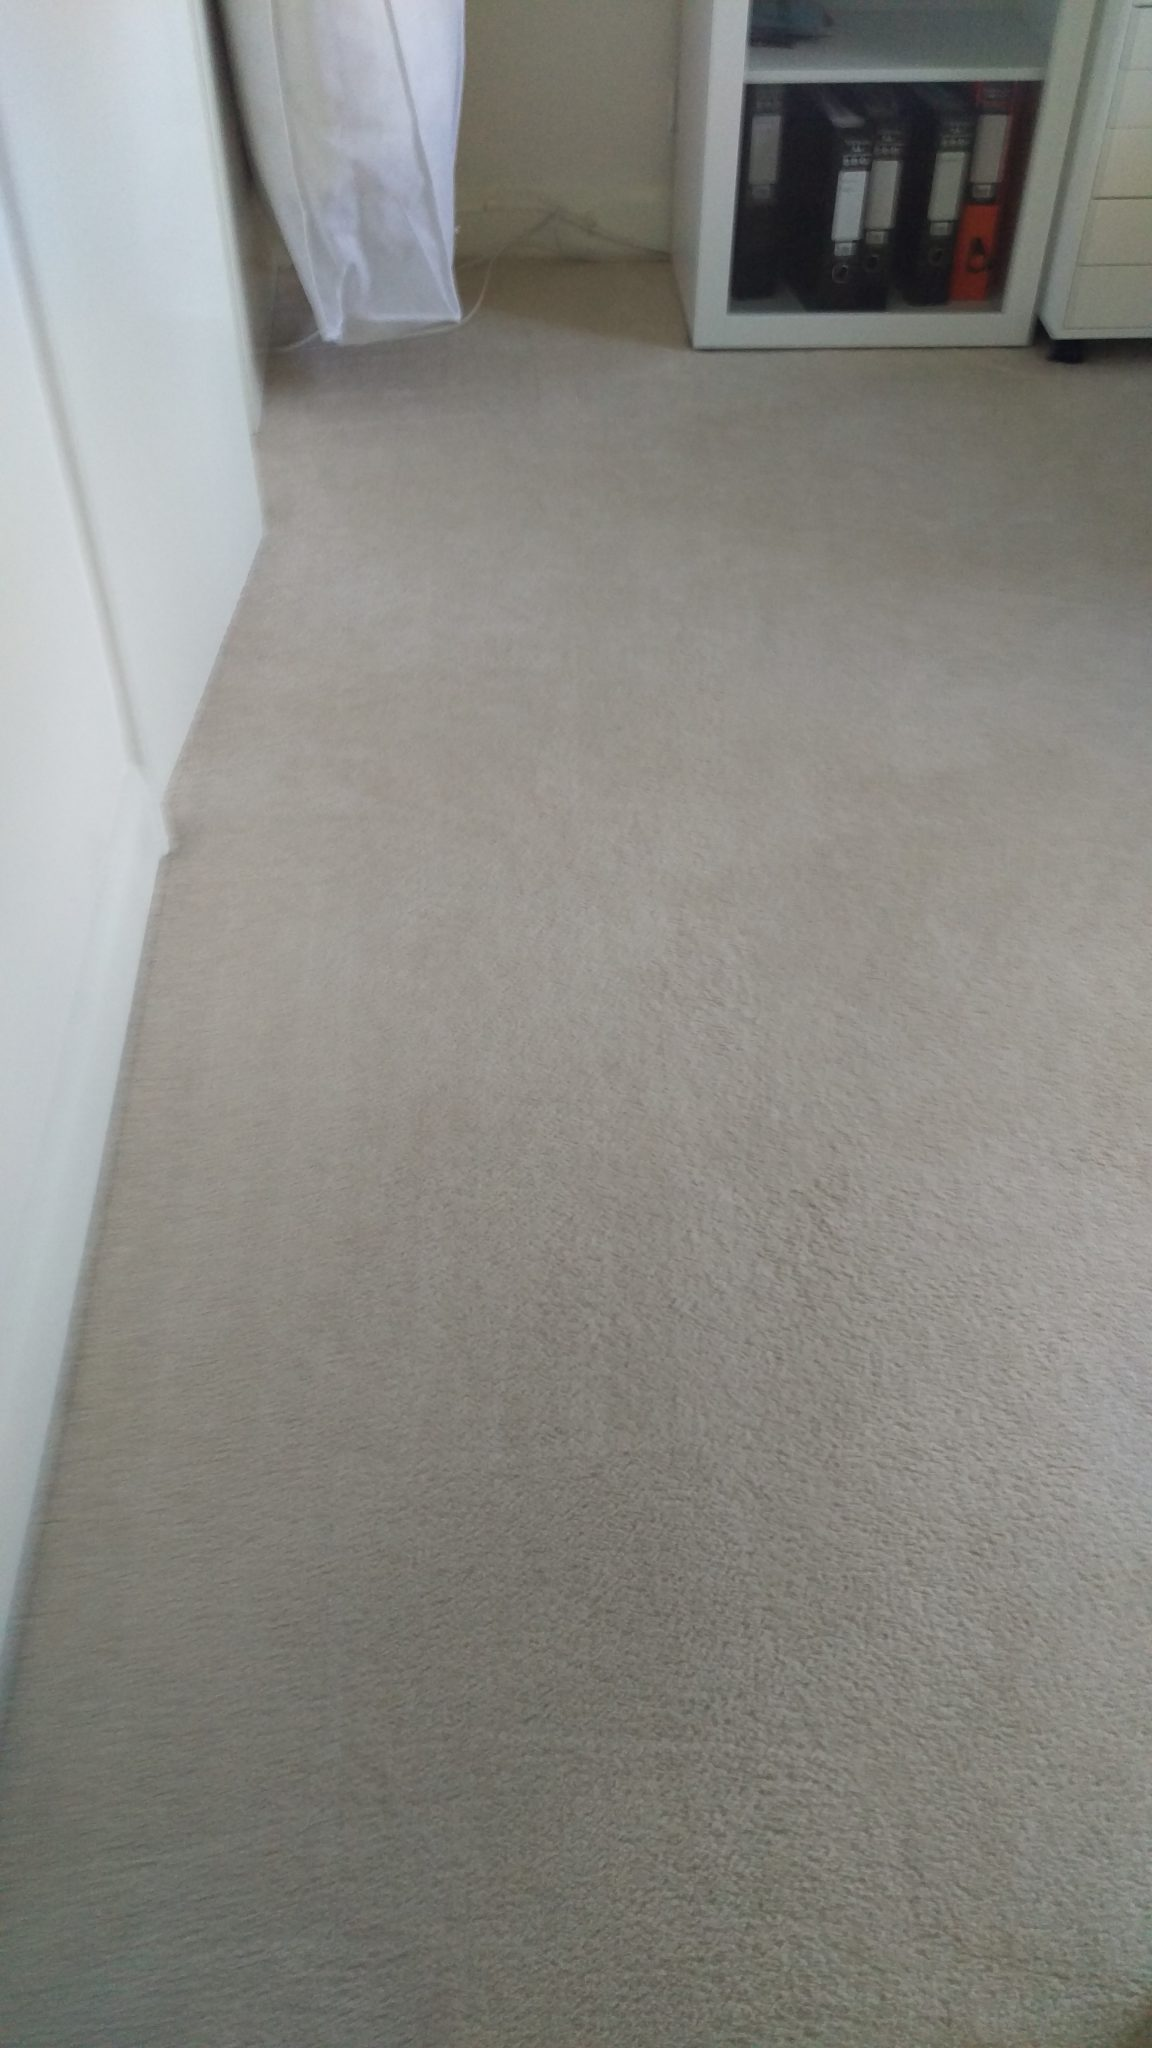 Carpet Cleaning In Dulwich Se21 Postcode Area South East